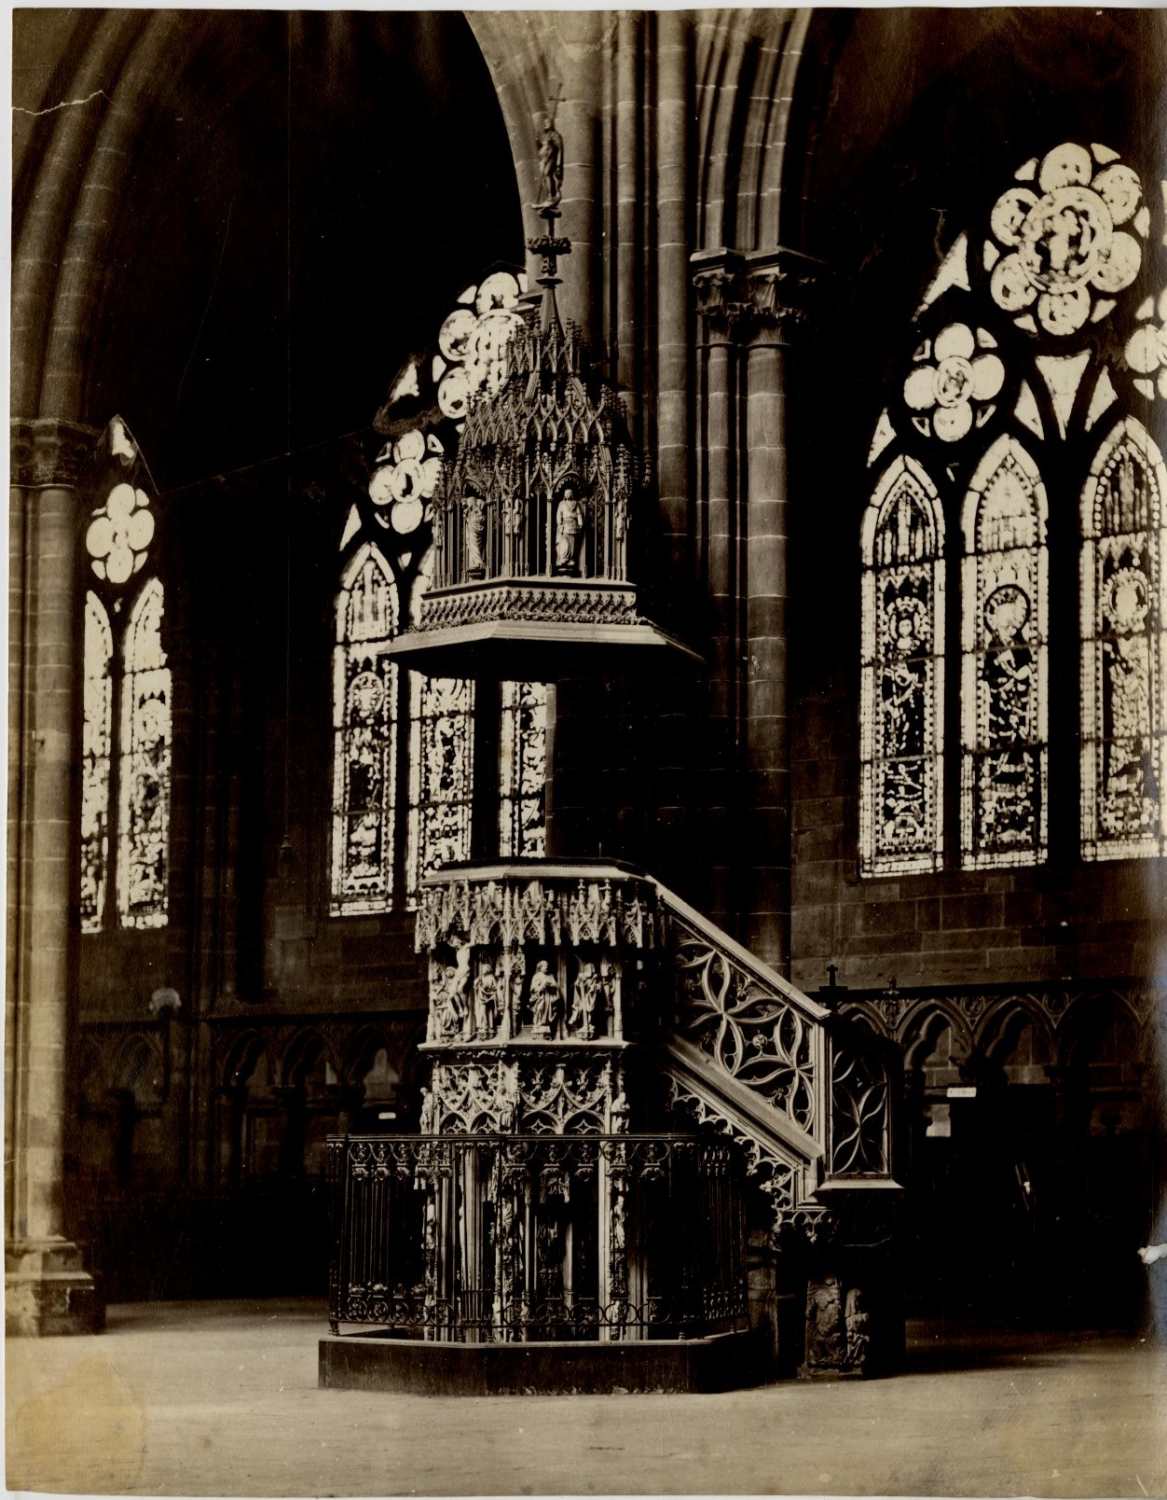 France strasbourg la cath drale interieur vintage albumen for Interieur france